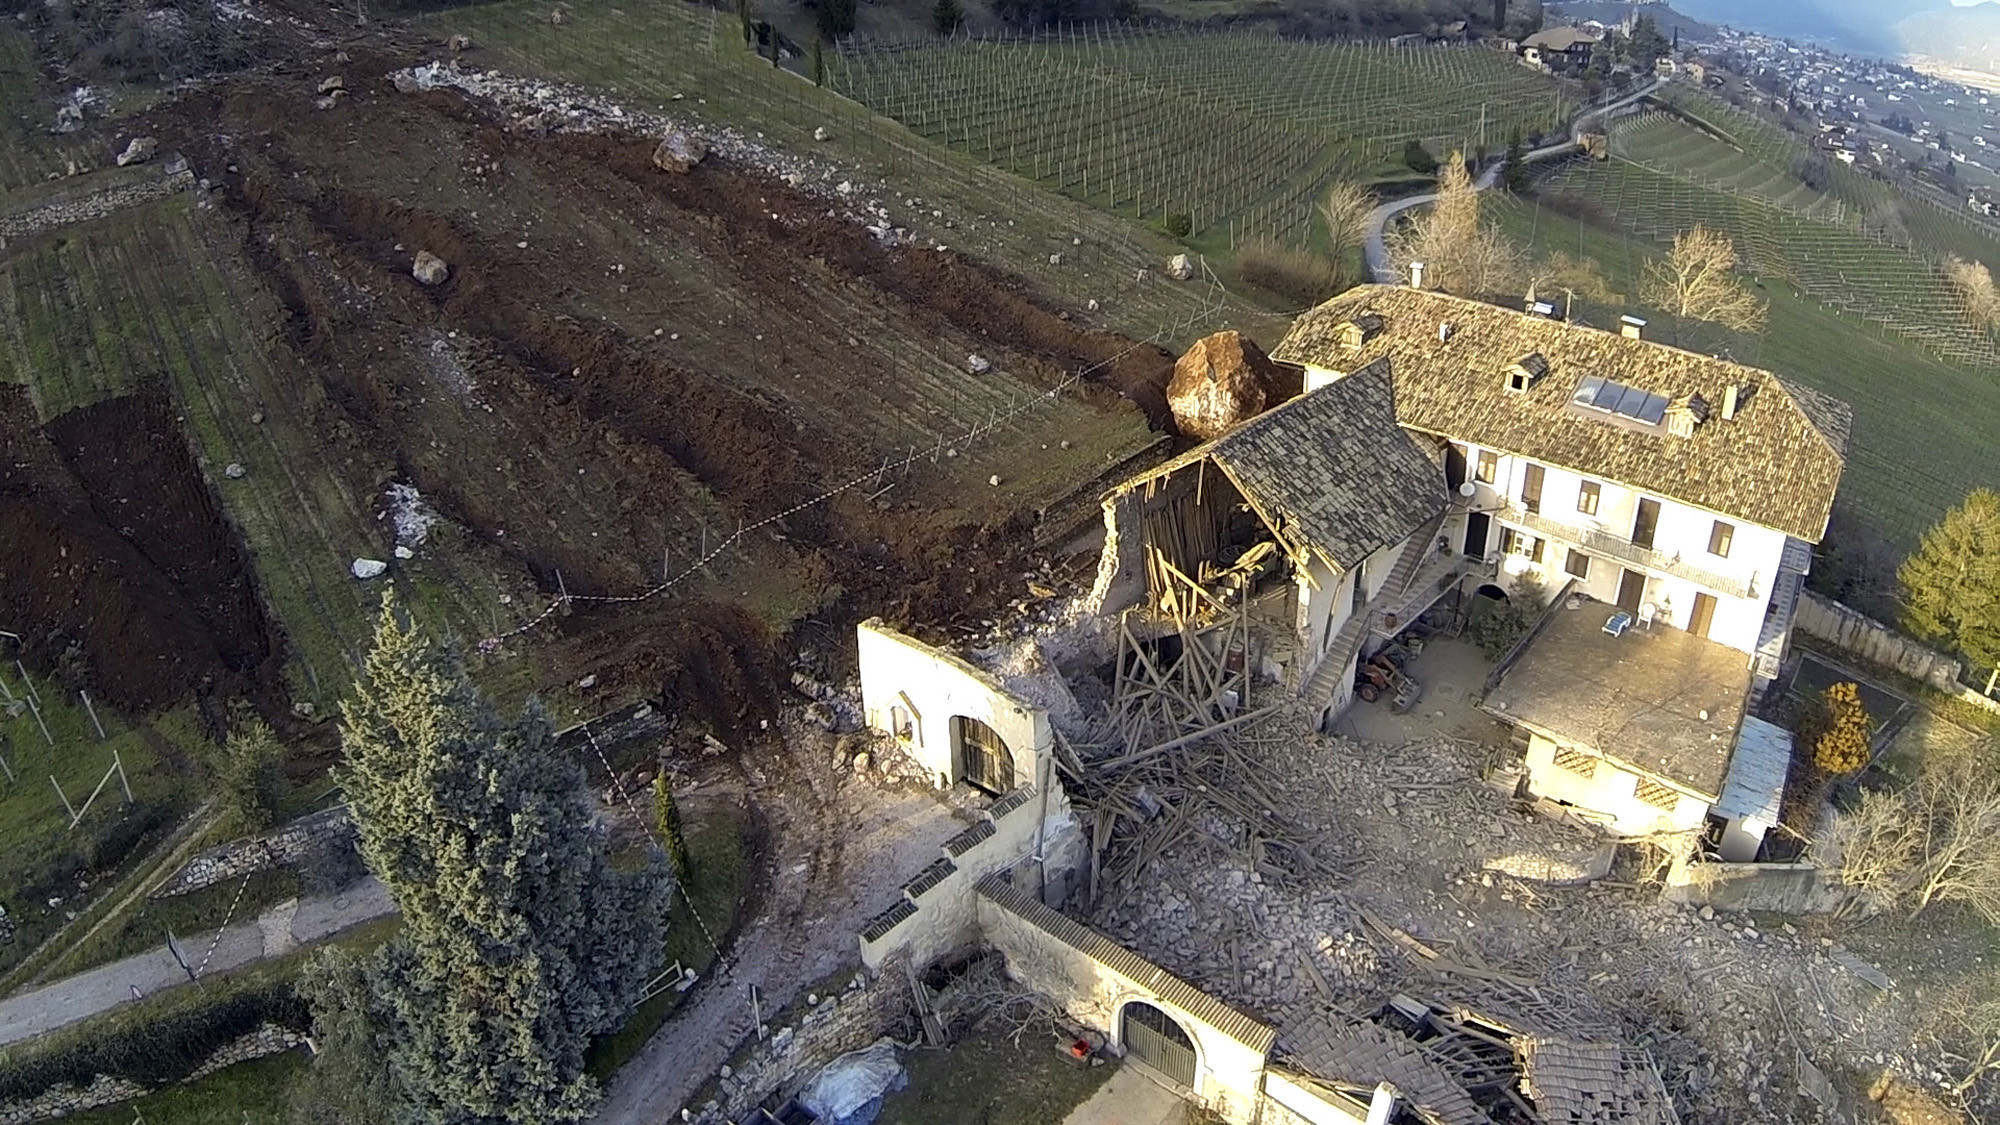 Huge boulder tumbles past farmhouse, destroys barn in Italy - Huge boulder